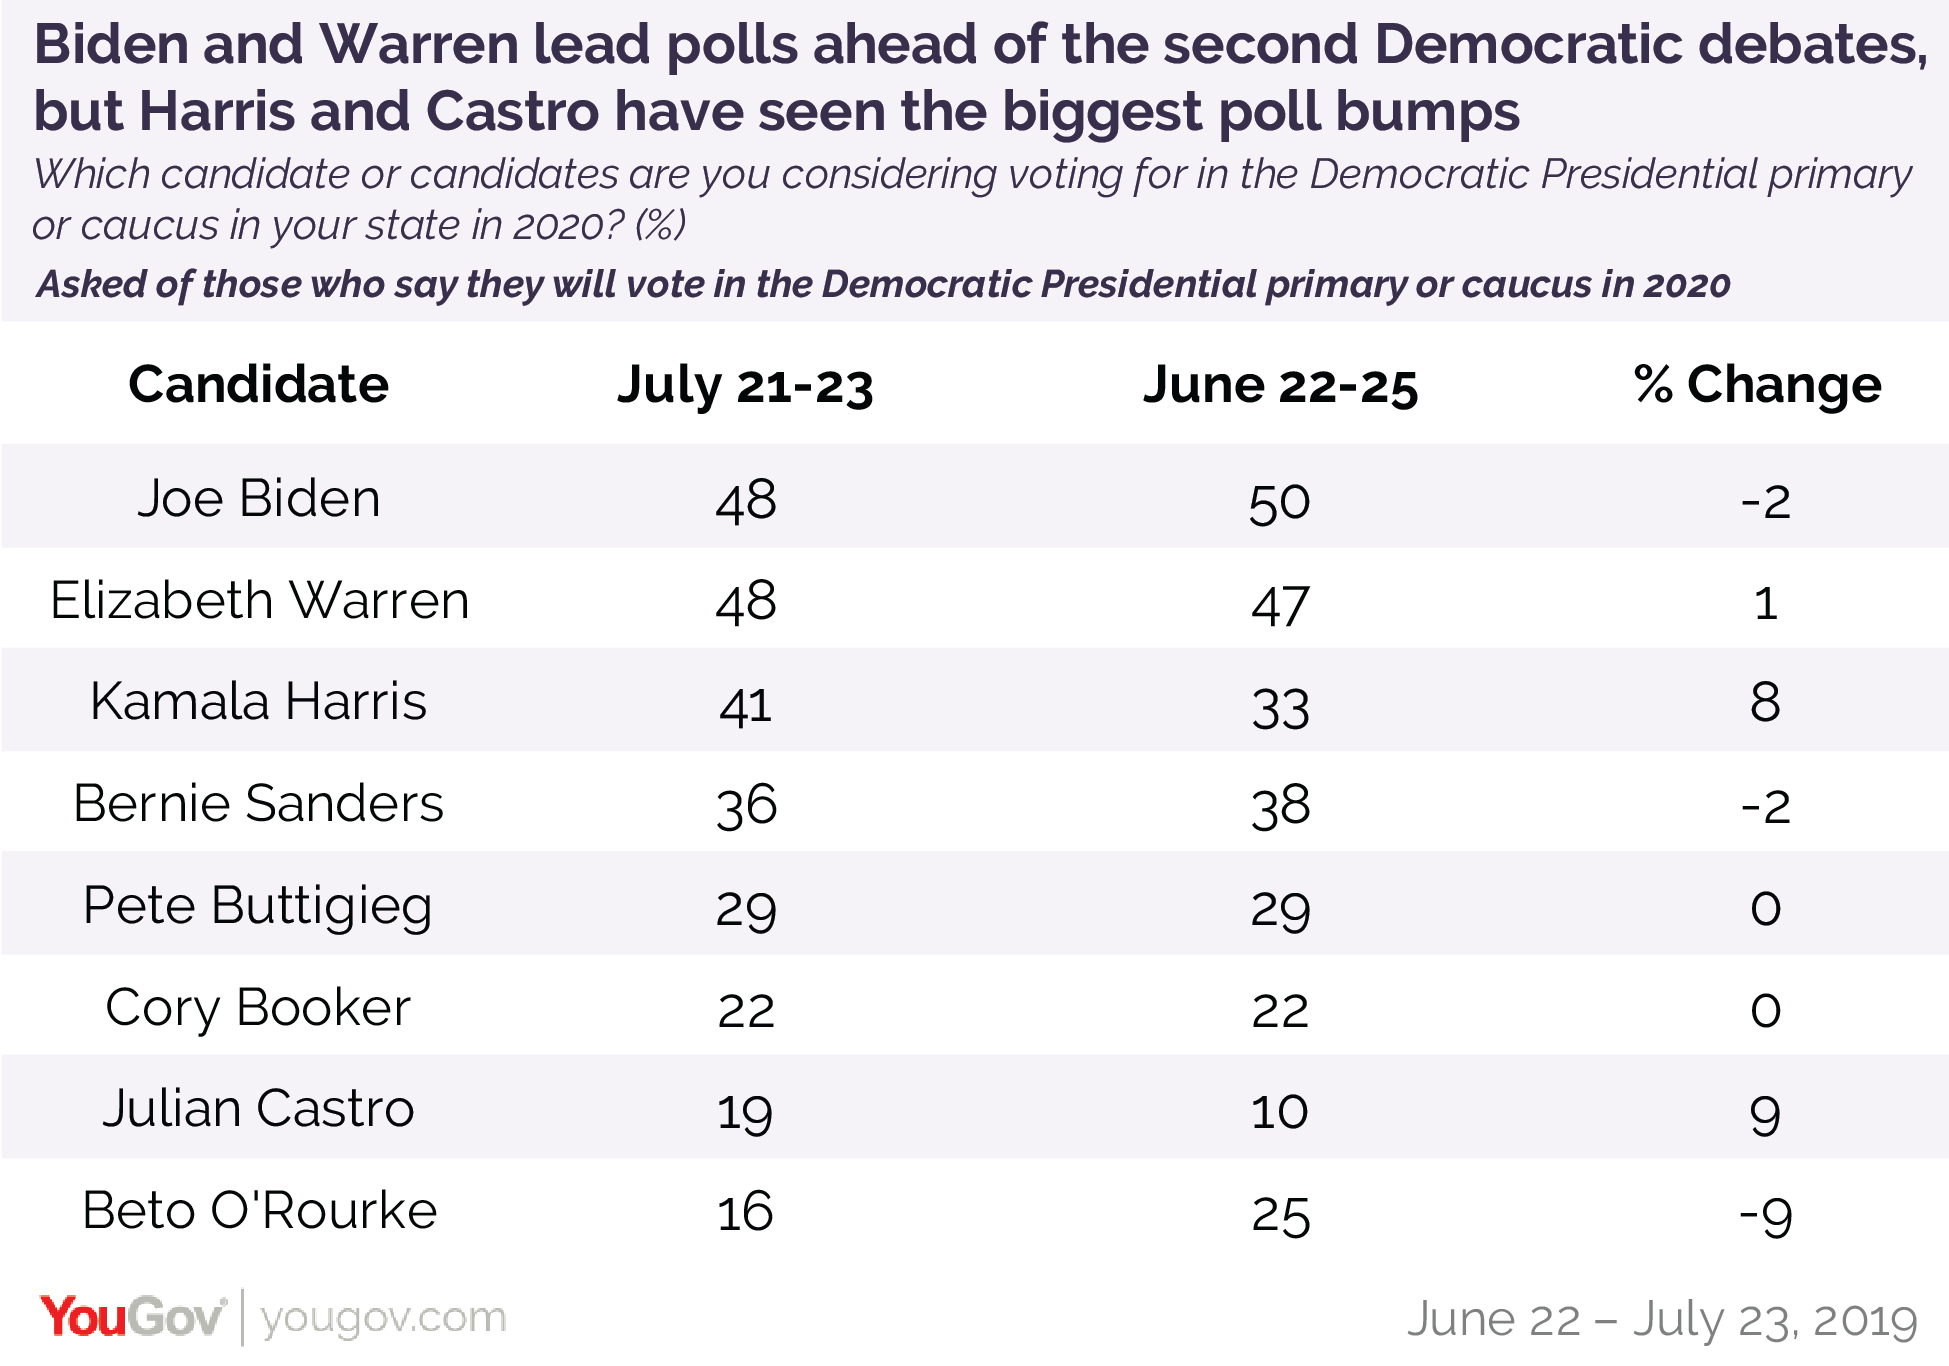 Biden and Warren lead polls ahead of the second Democratic debates, but Harris and Castro have seen the biggest overall poll bumps